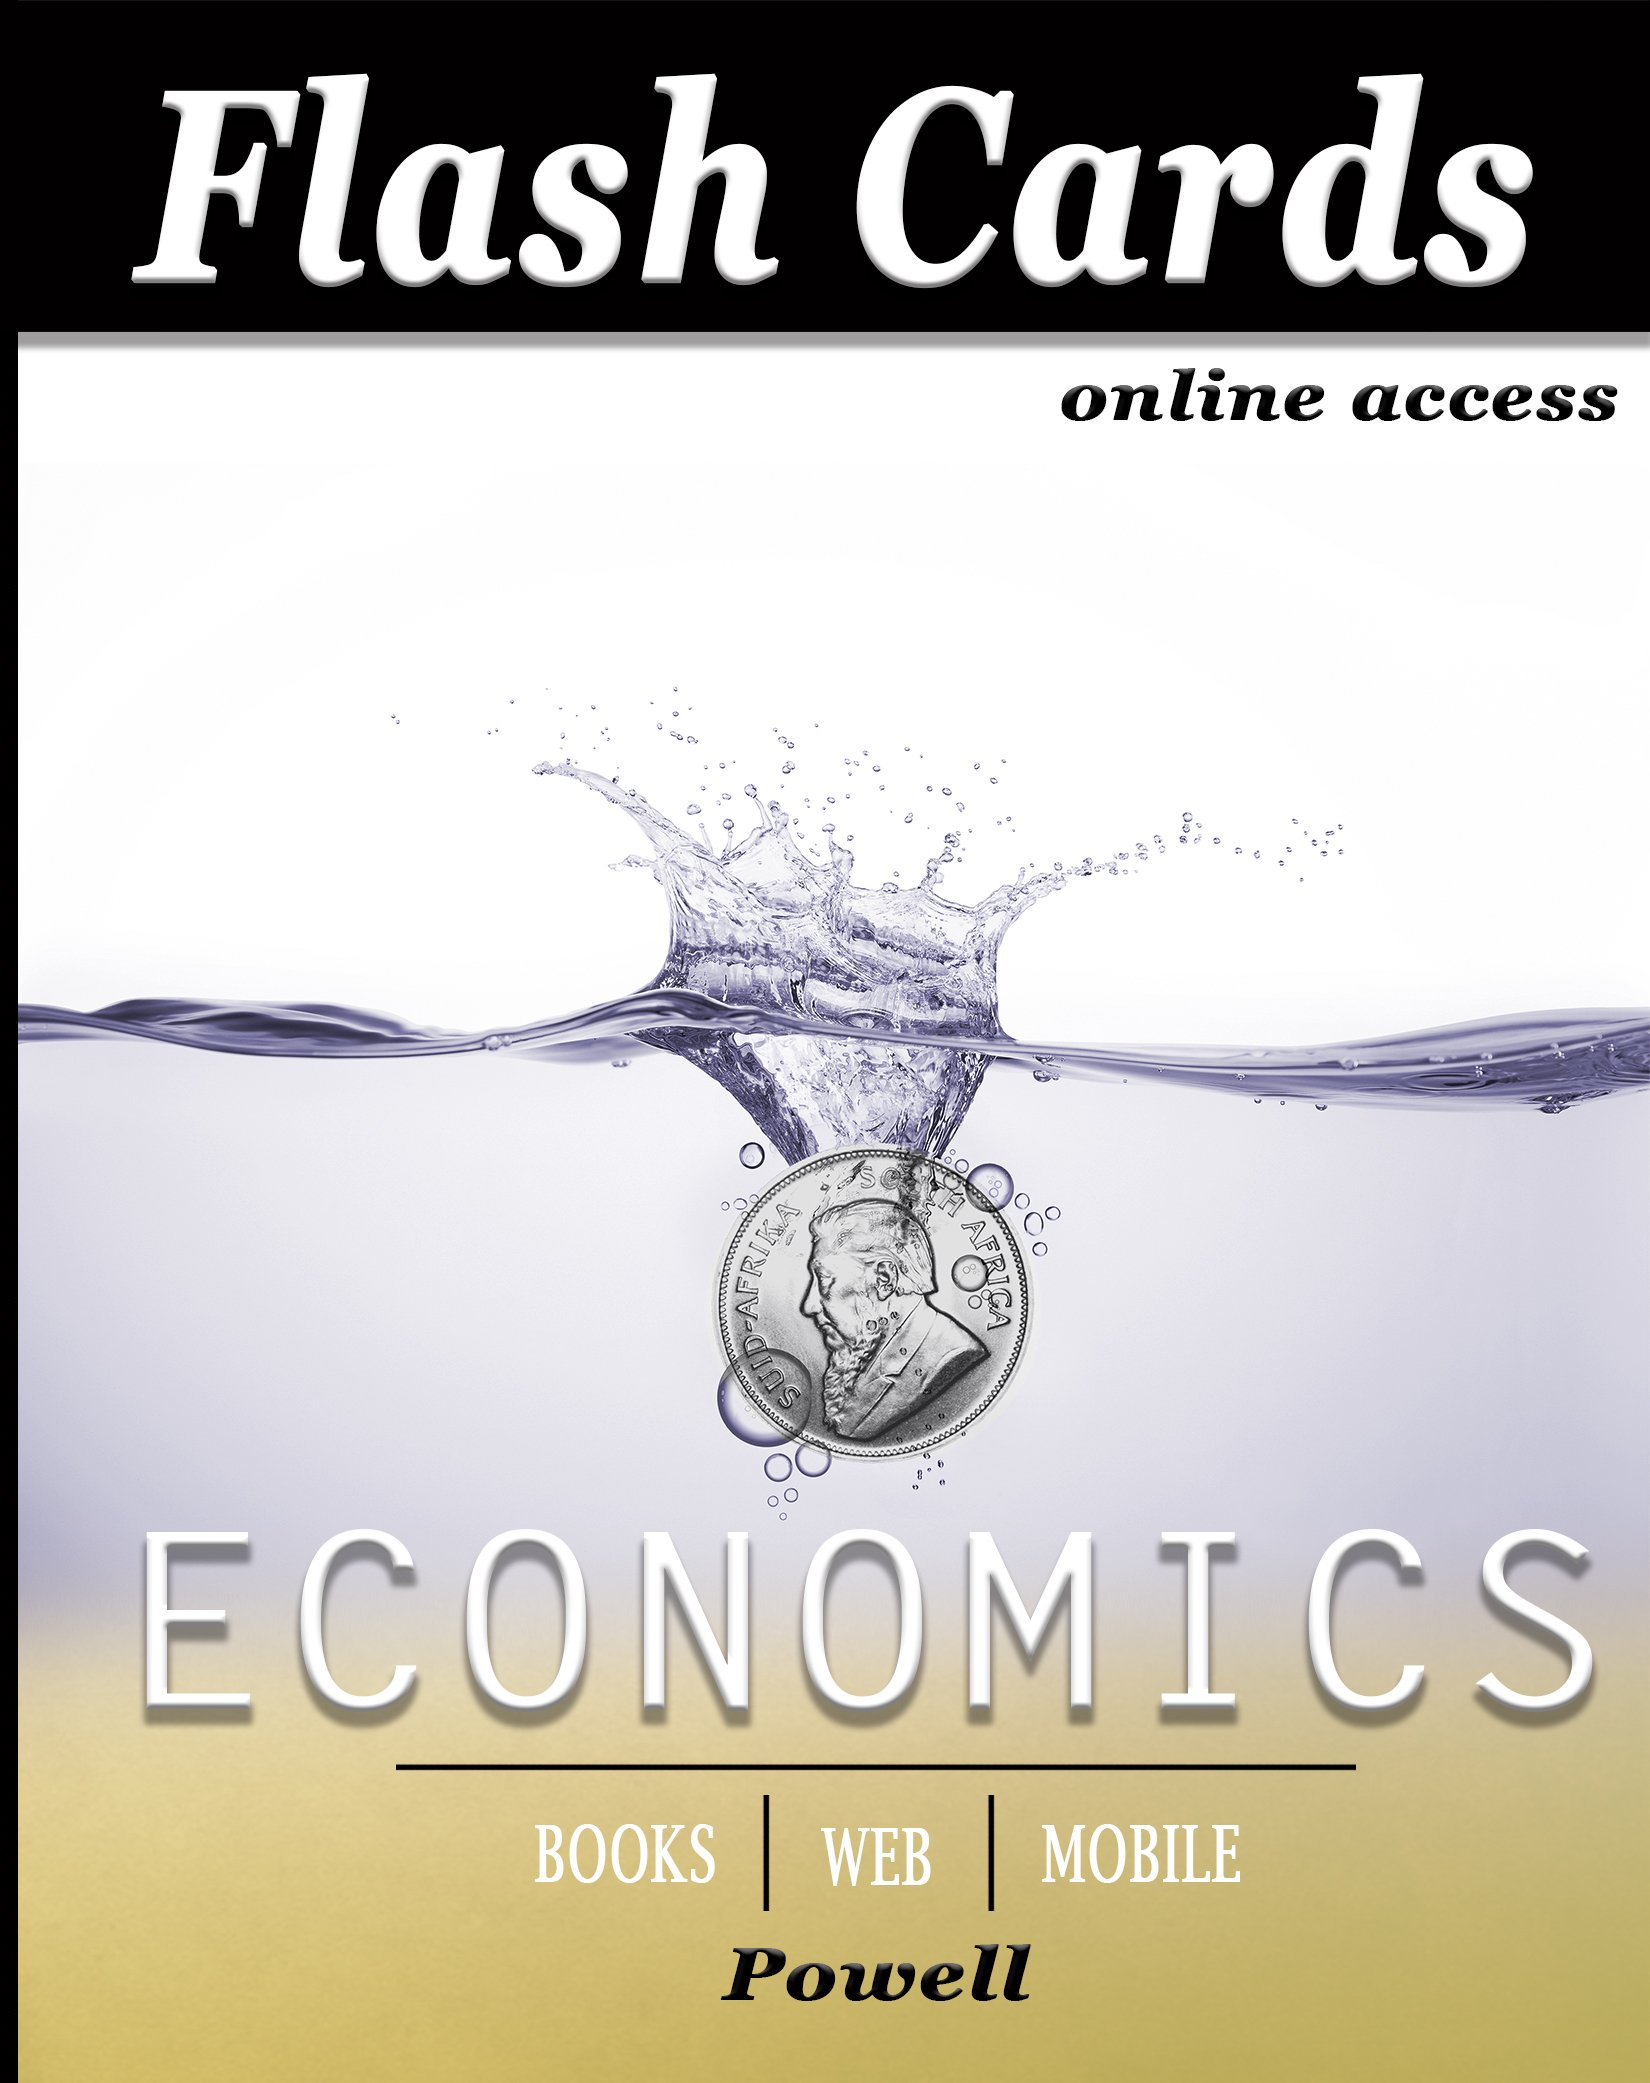 Download Access Card for Online Flash Cards, International finance PDF